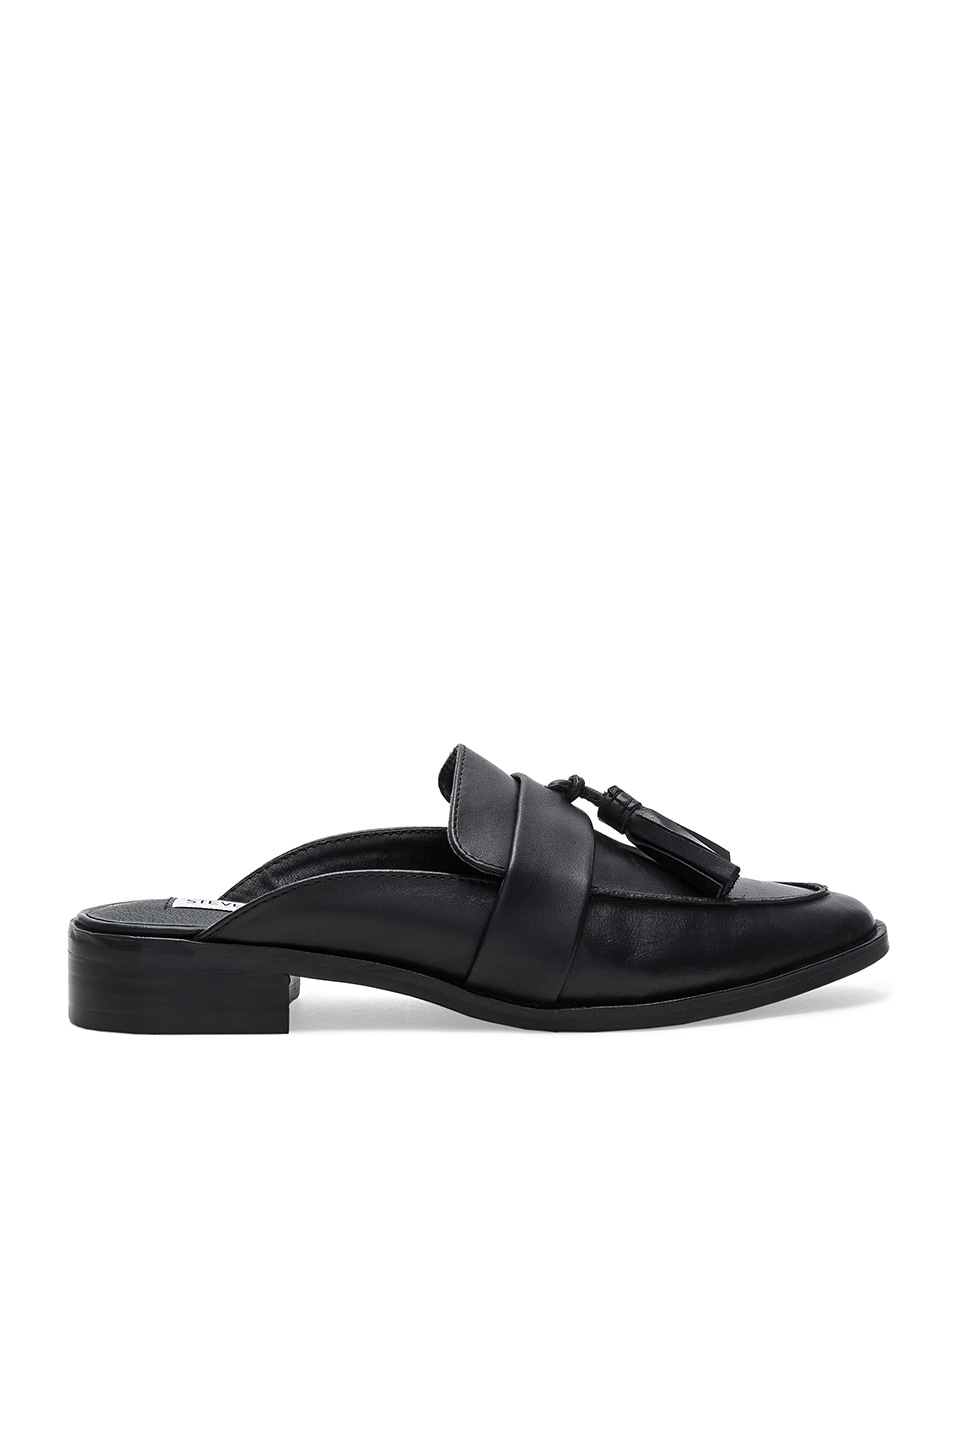 f4226f8d53b Steve Madden Magan Mule in Black Leather | REVOLVE